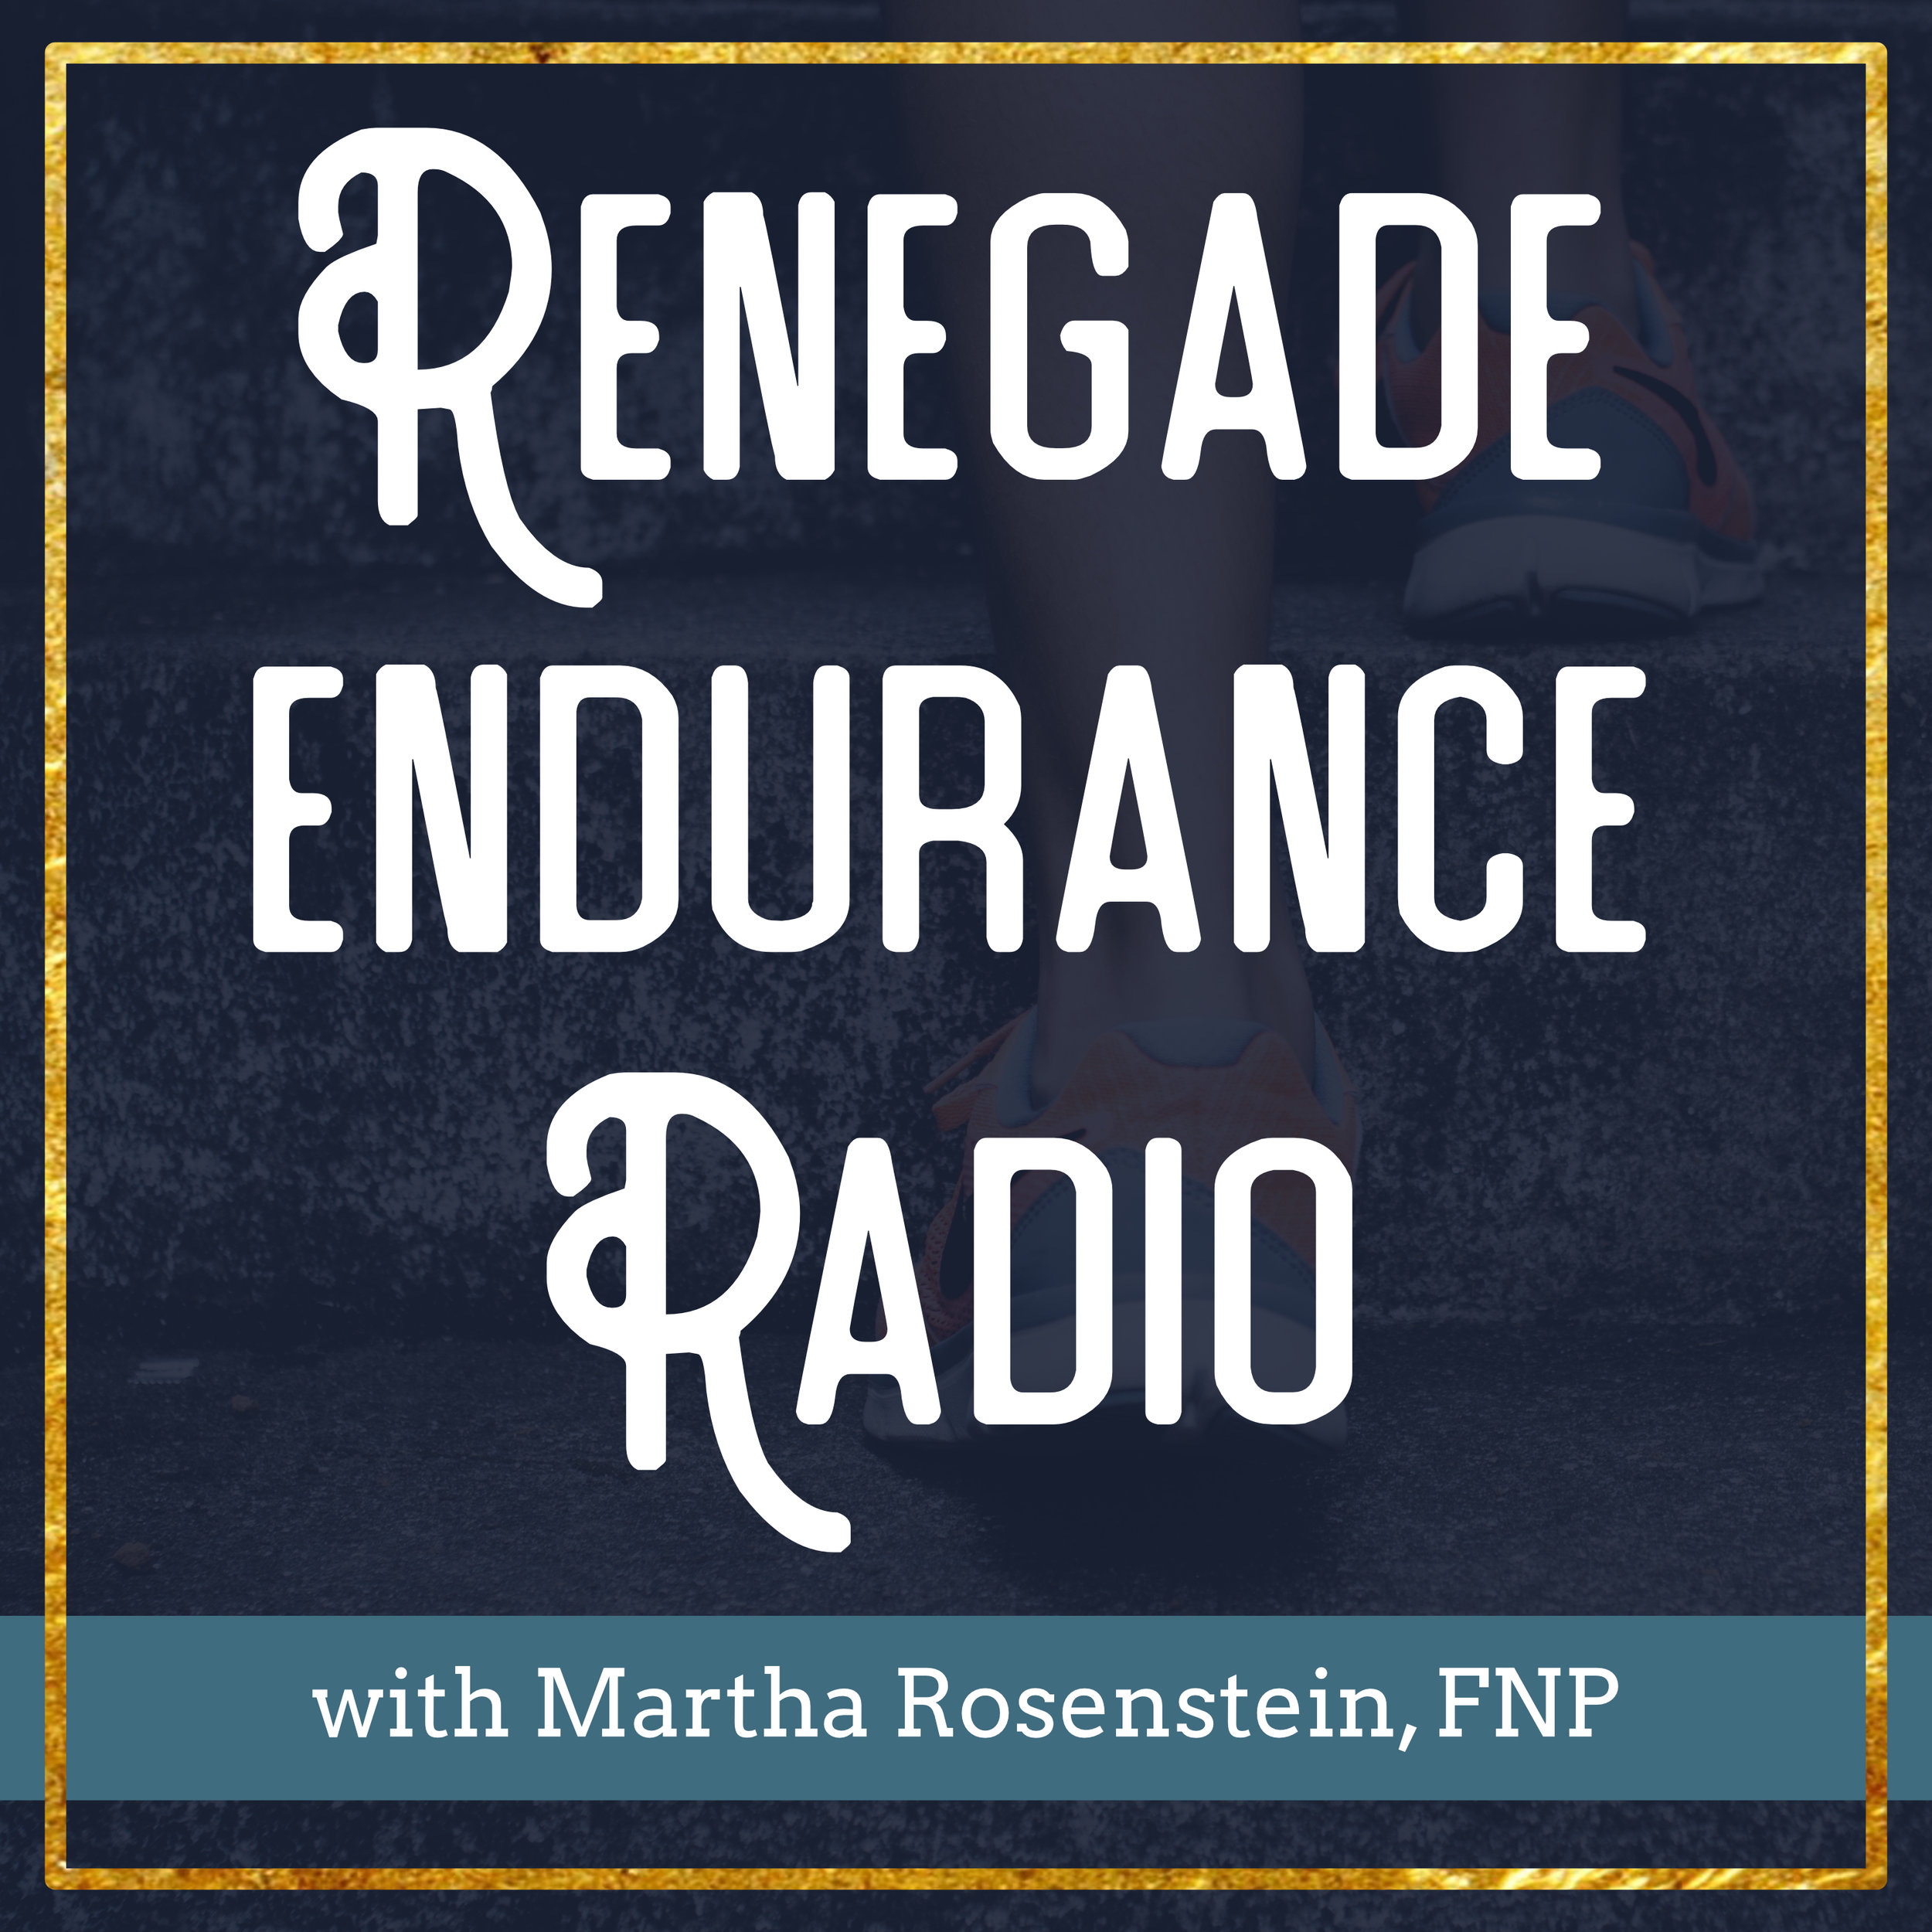 Renegade Endurance Radio